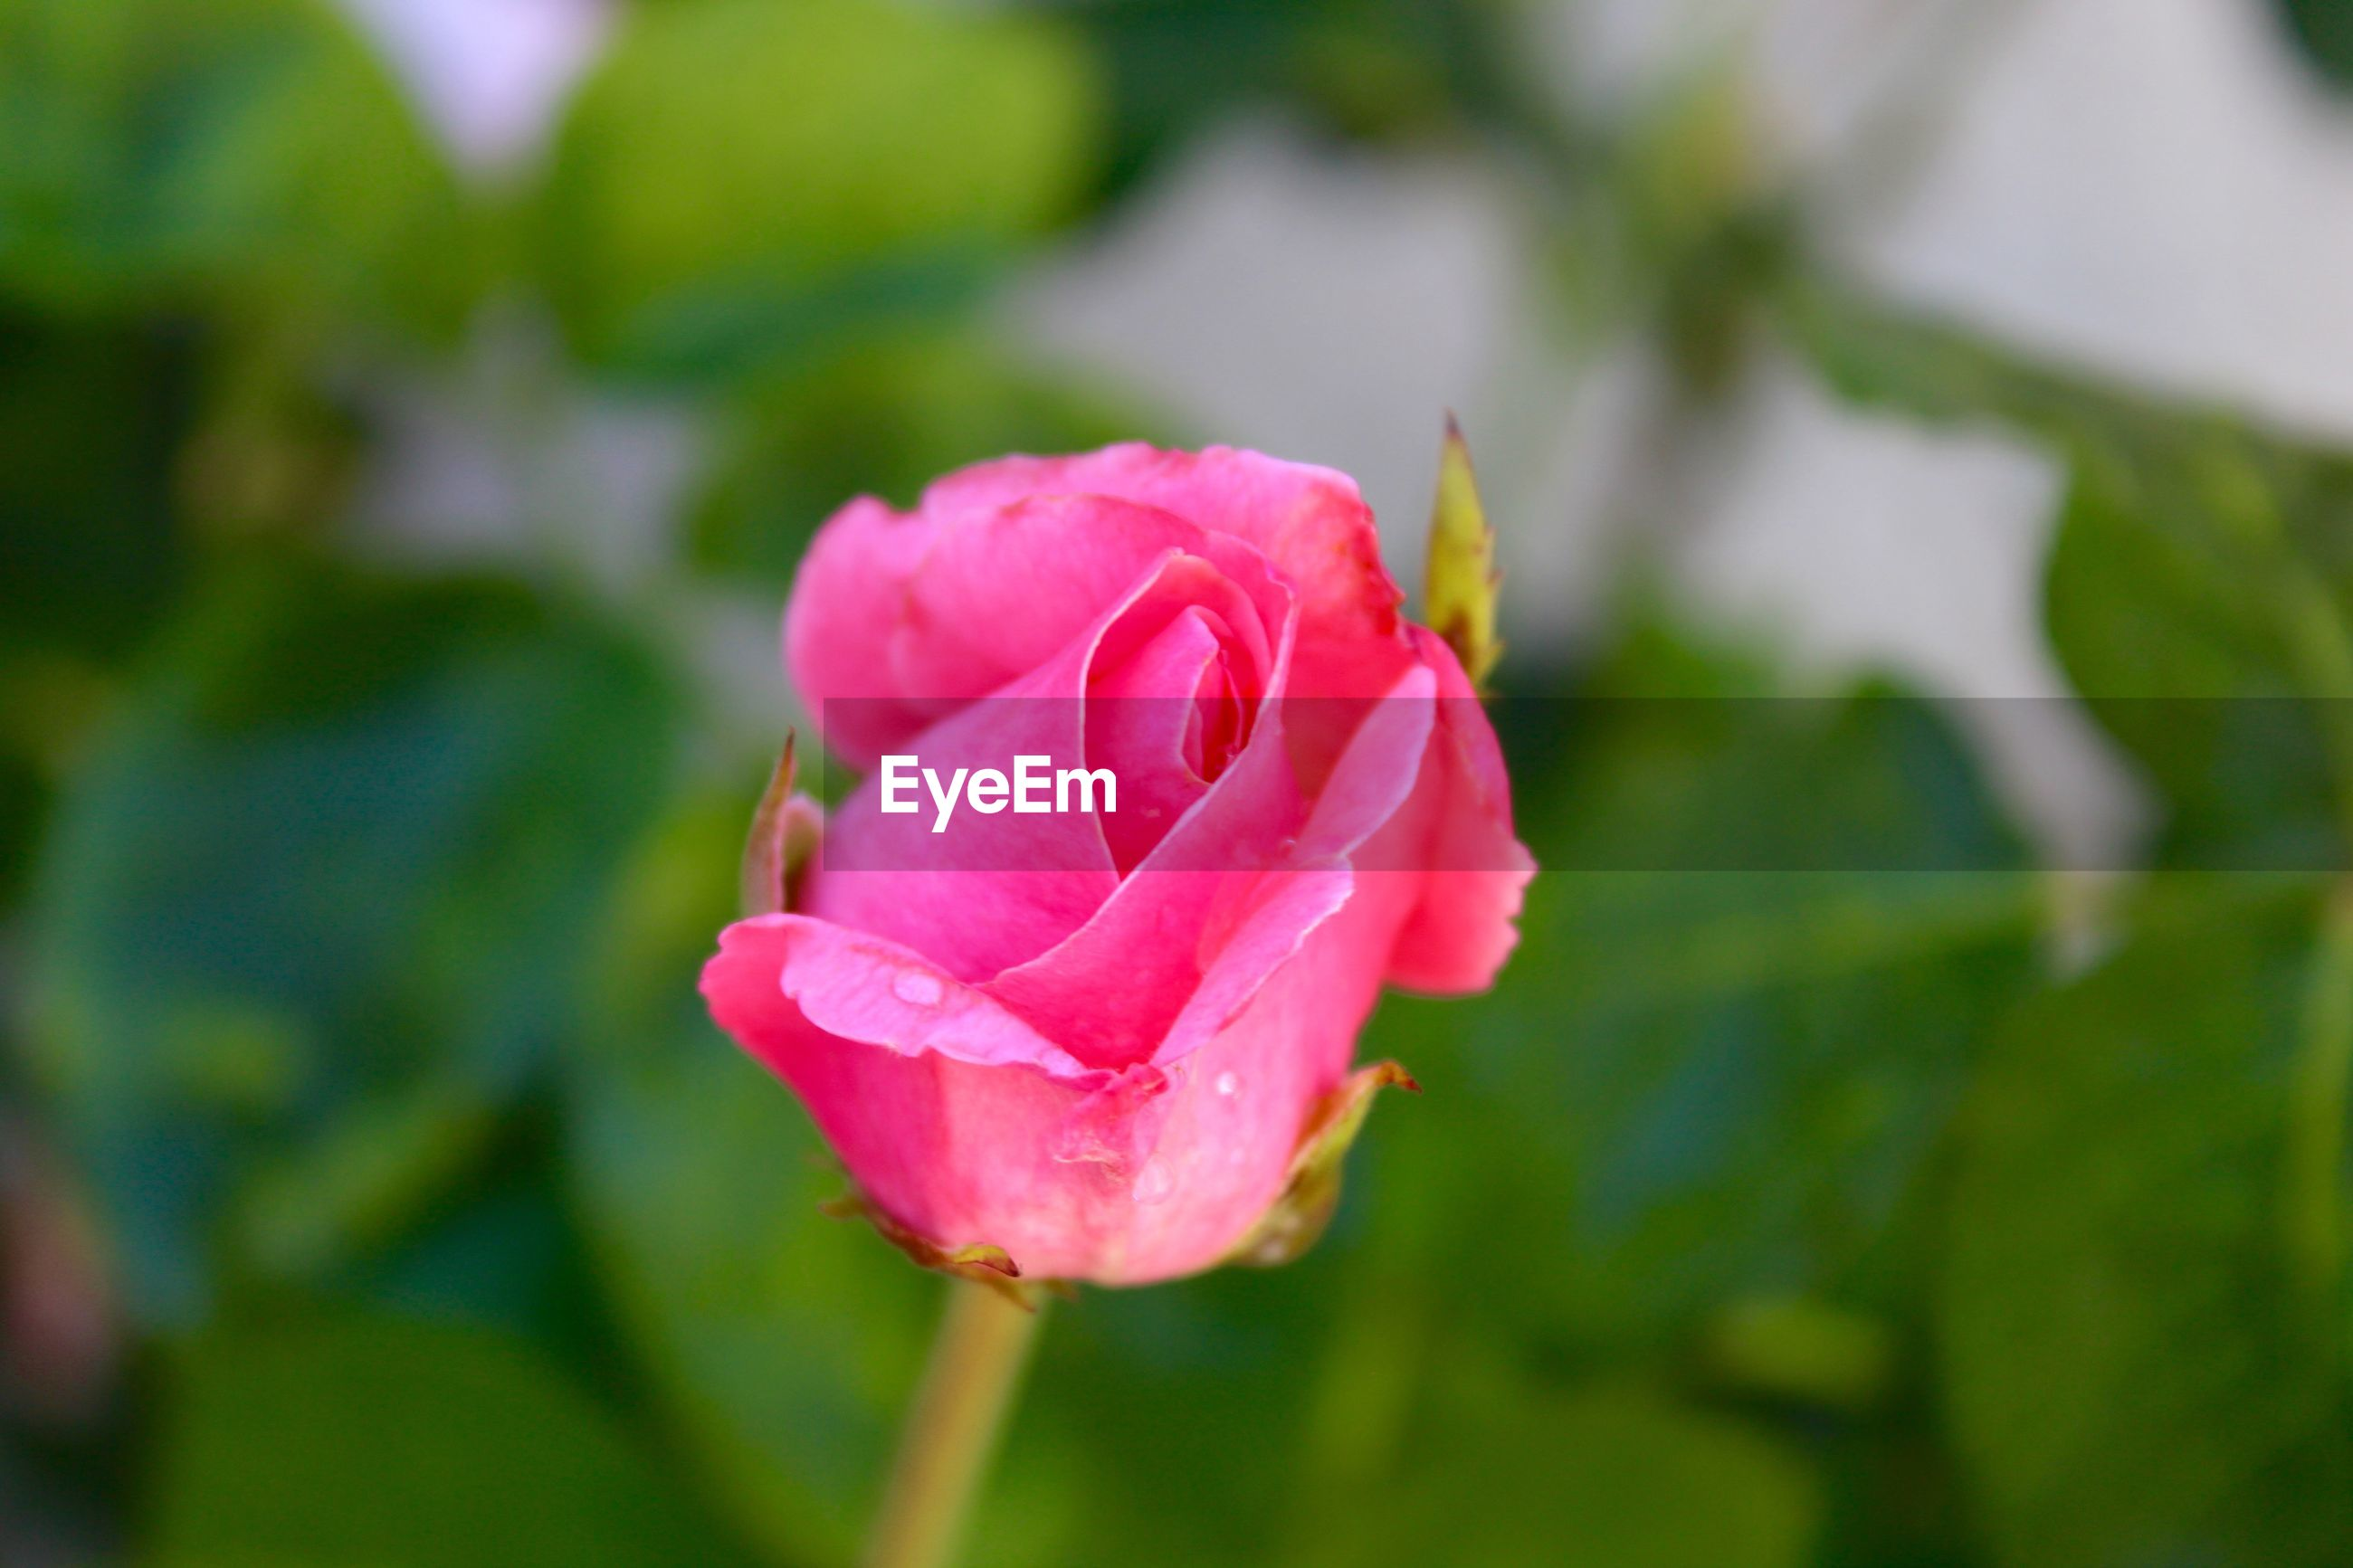 CLOSE-UP OF PINK ROSE FLOWER IN SUNLIGHT